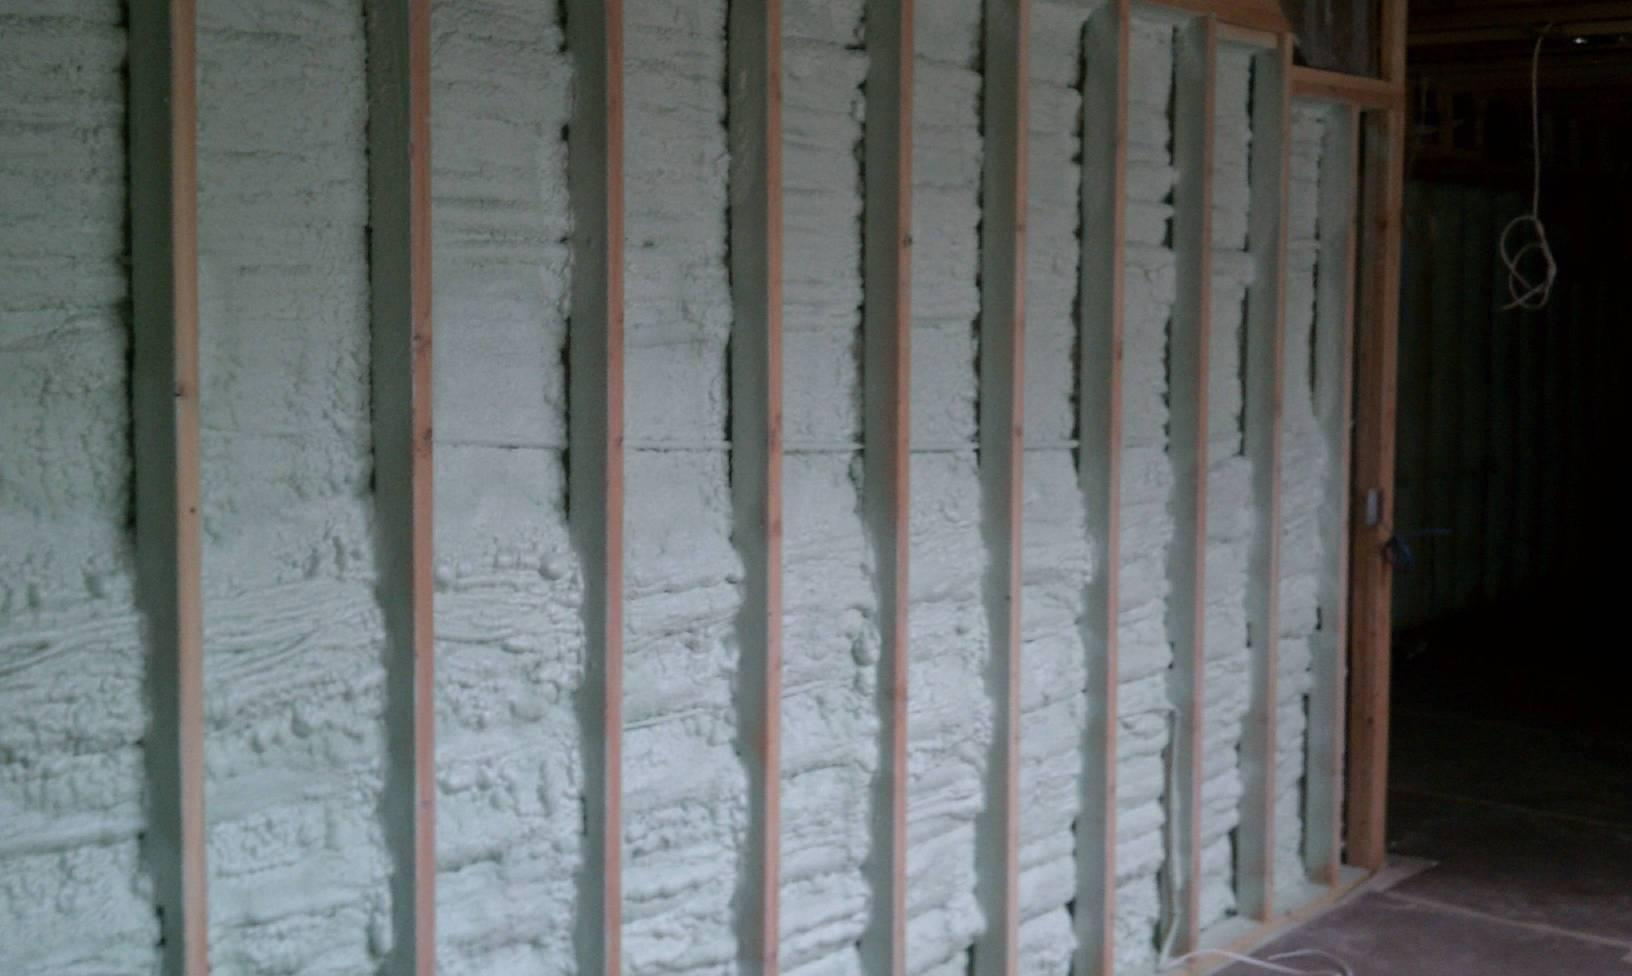 Walls are now fortified with spray foam insulation